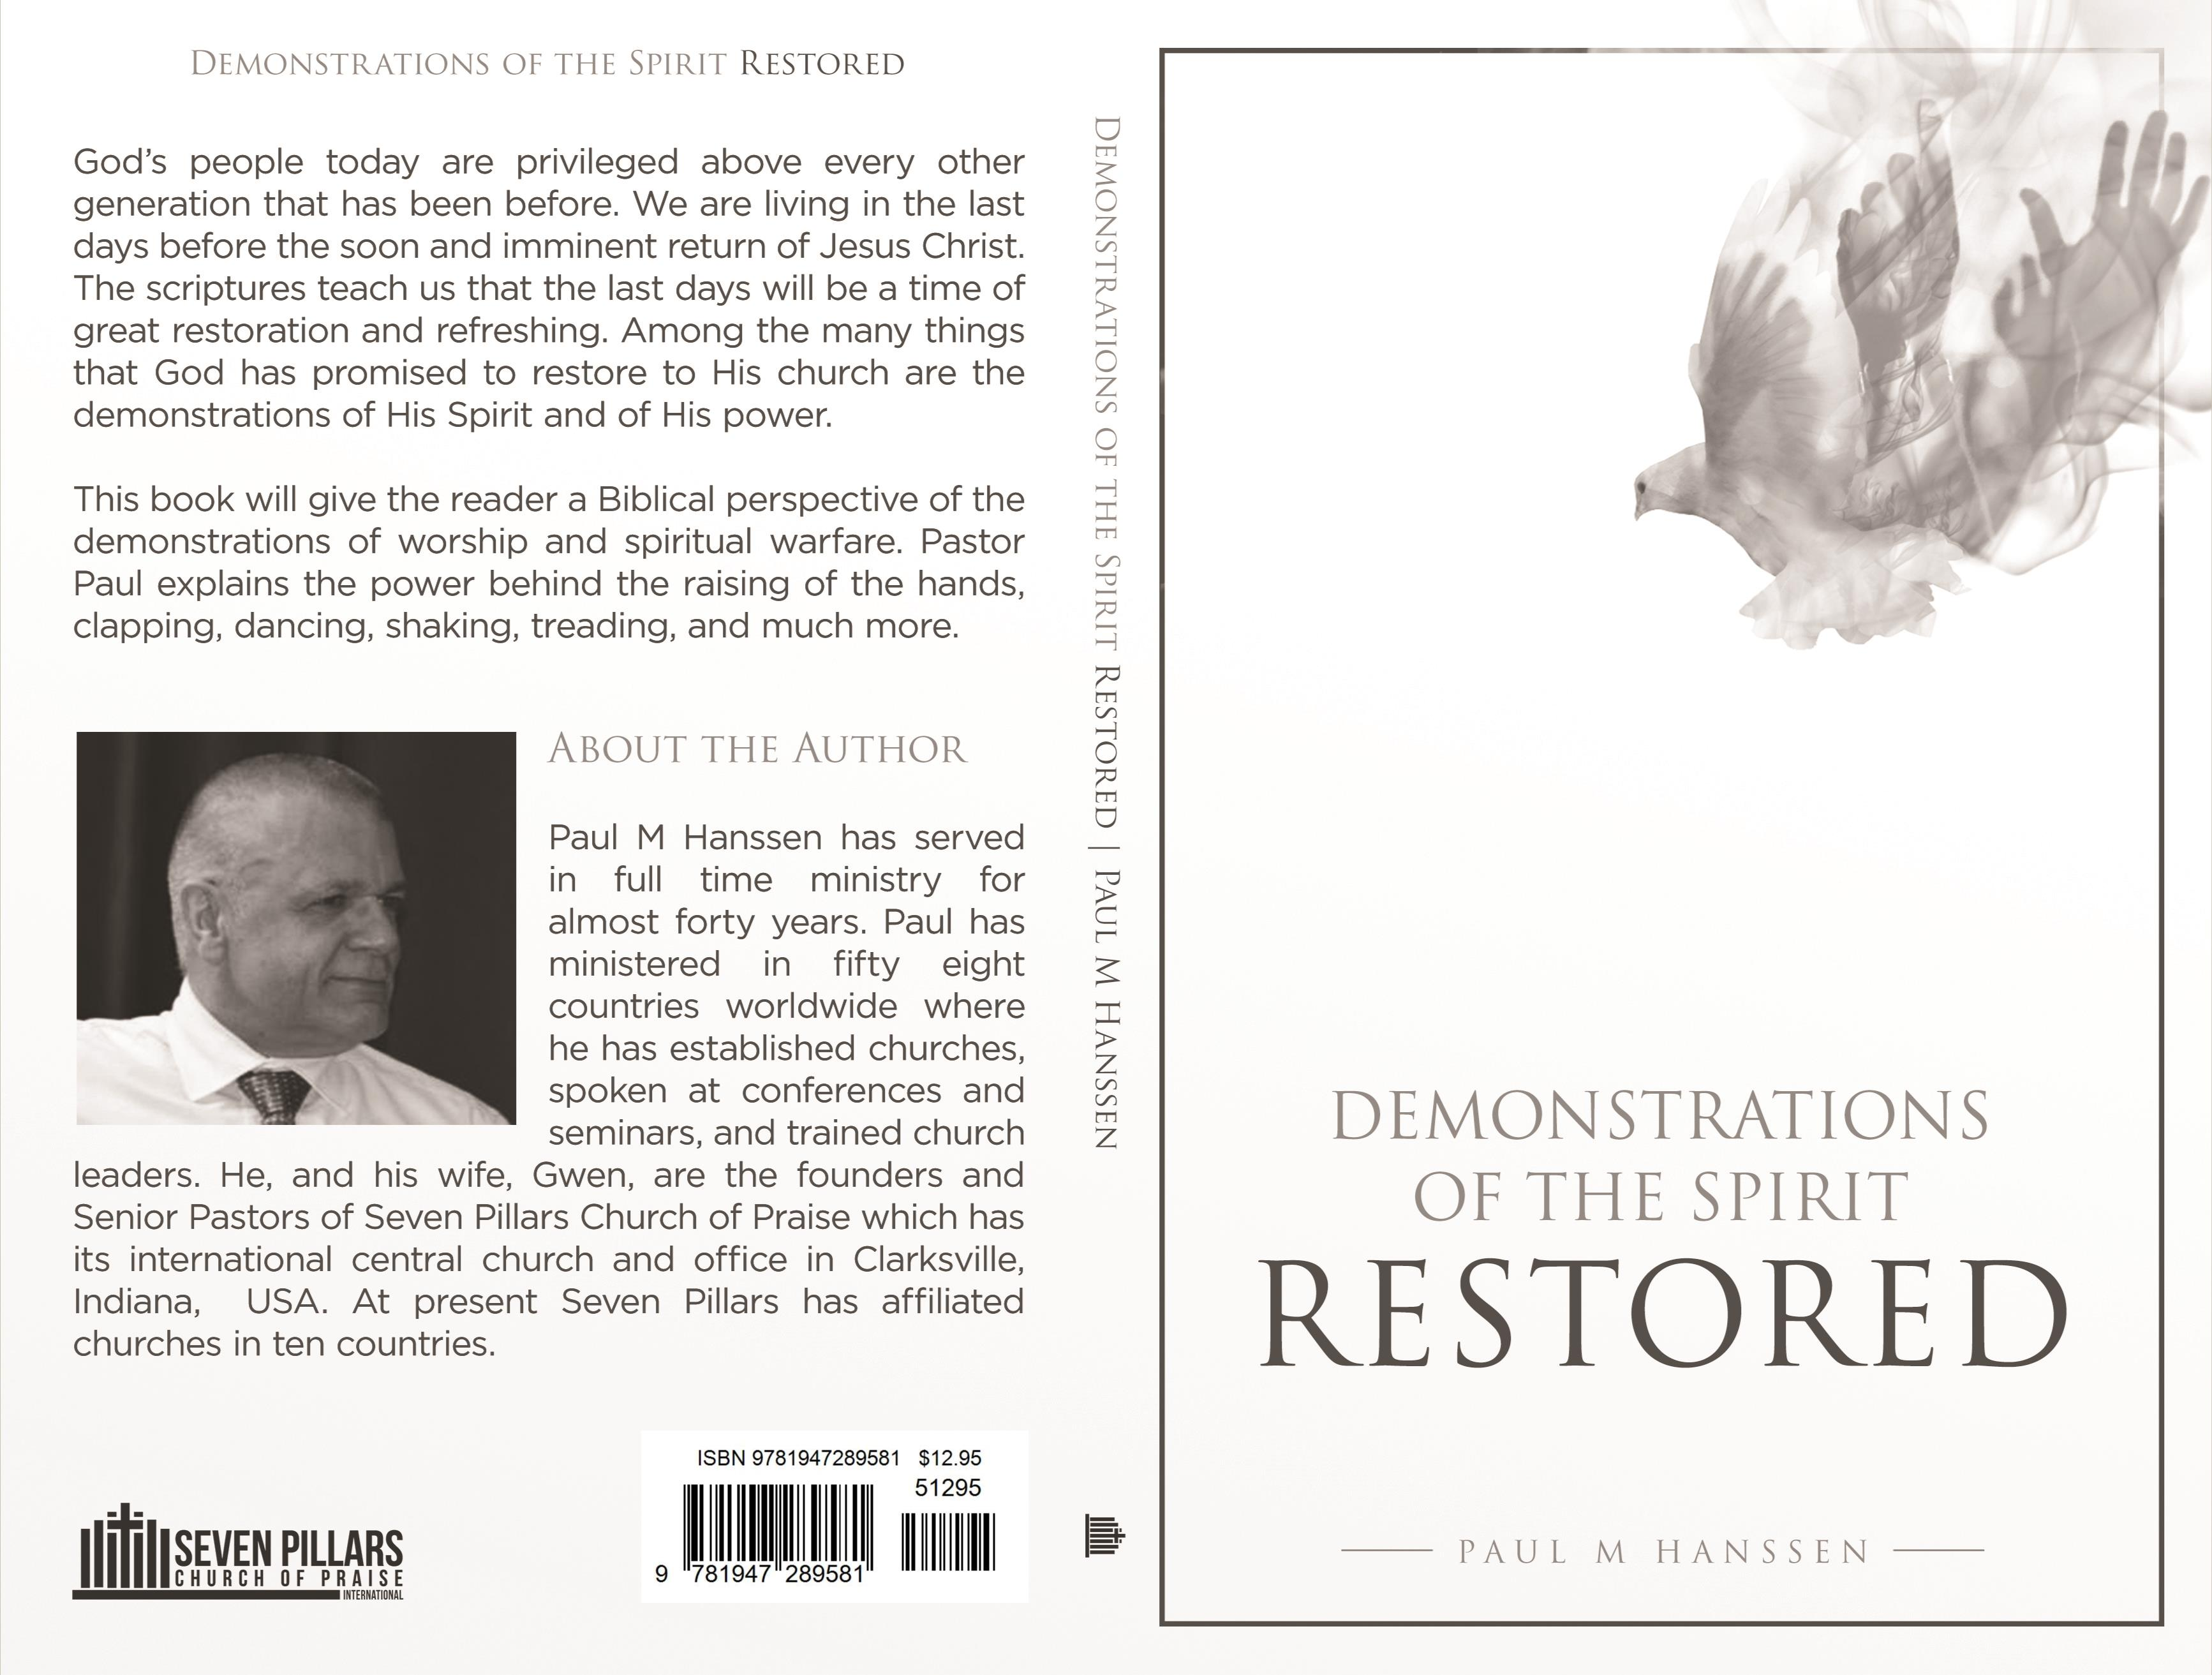 The Demonstrations of The Spirit RESTORED cover image